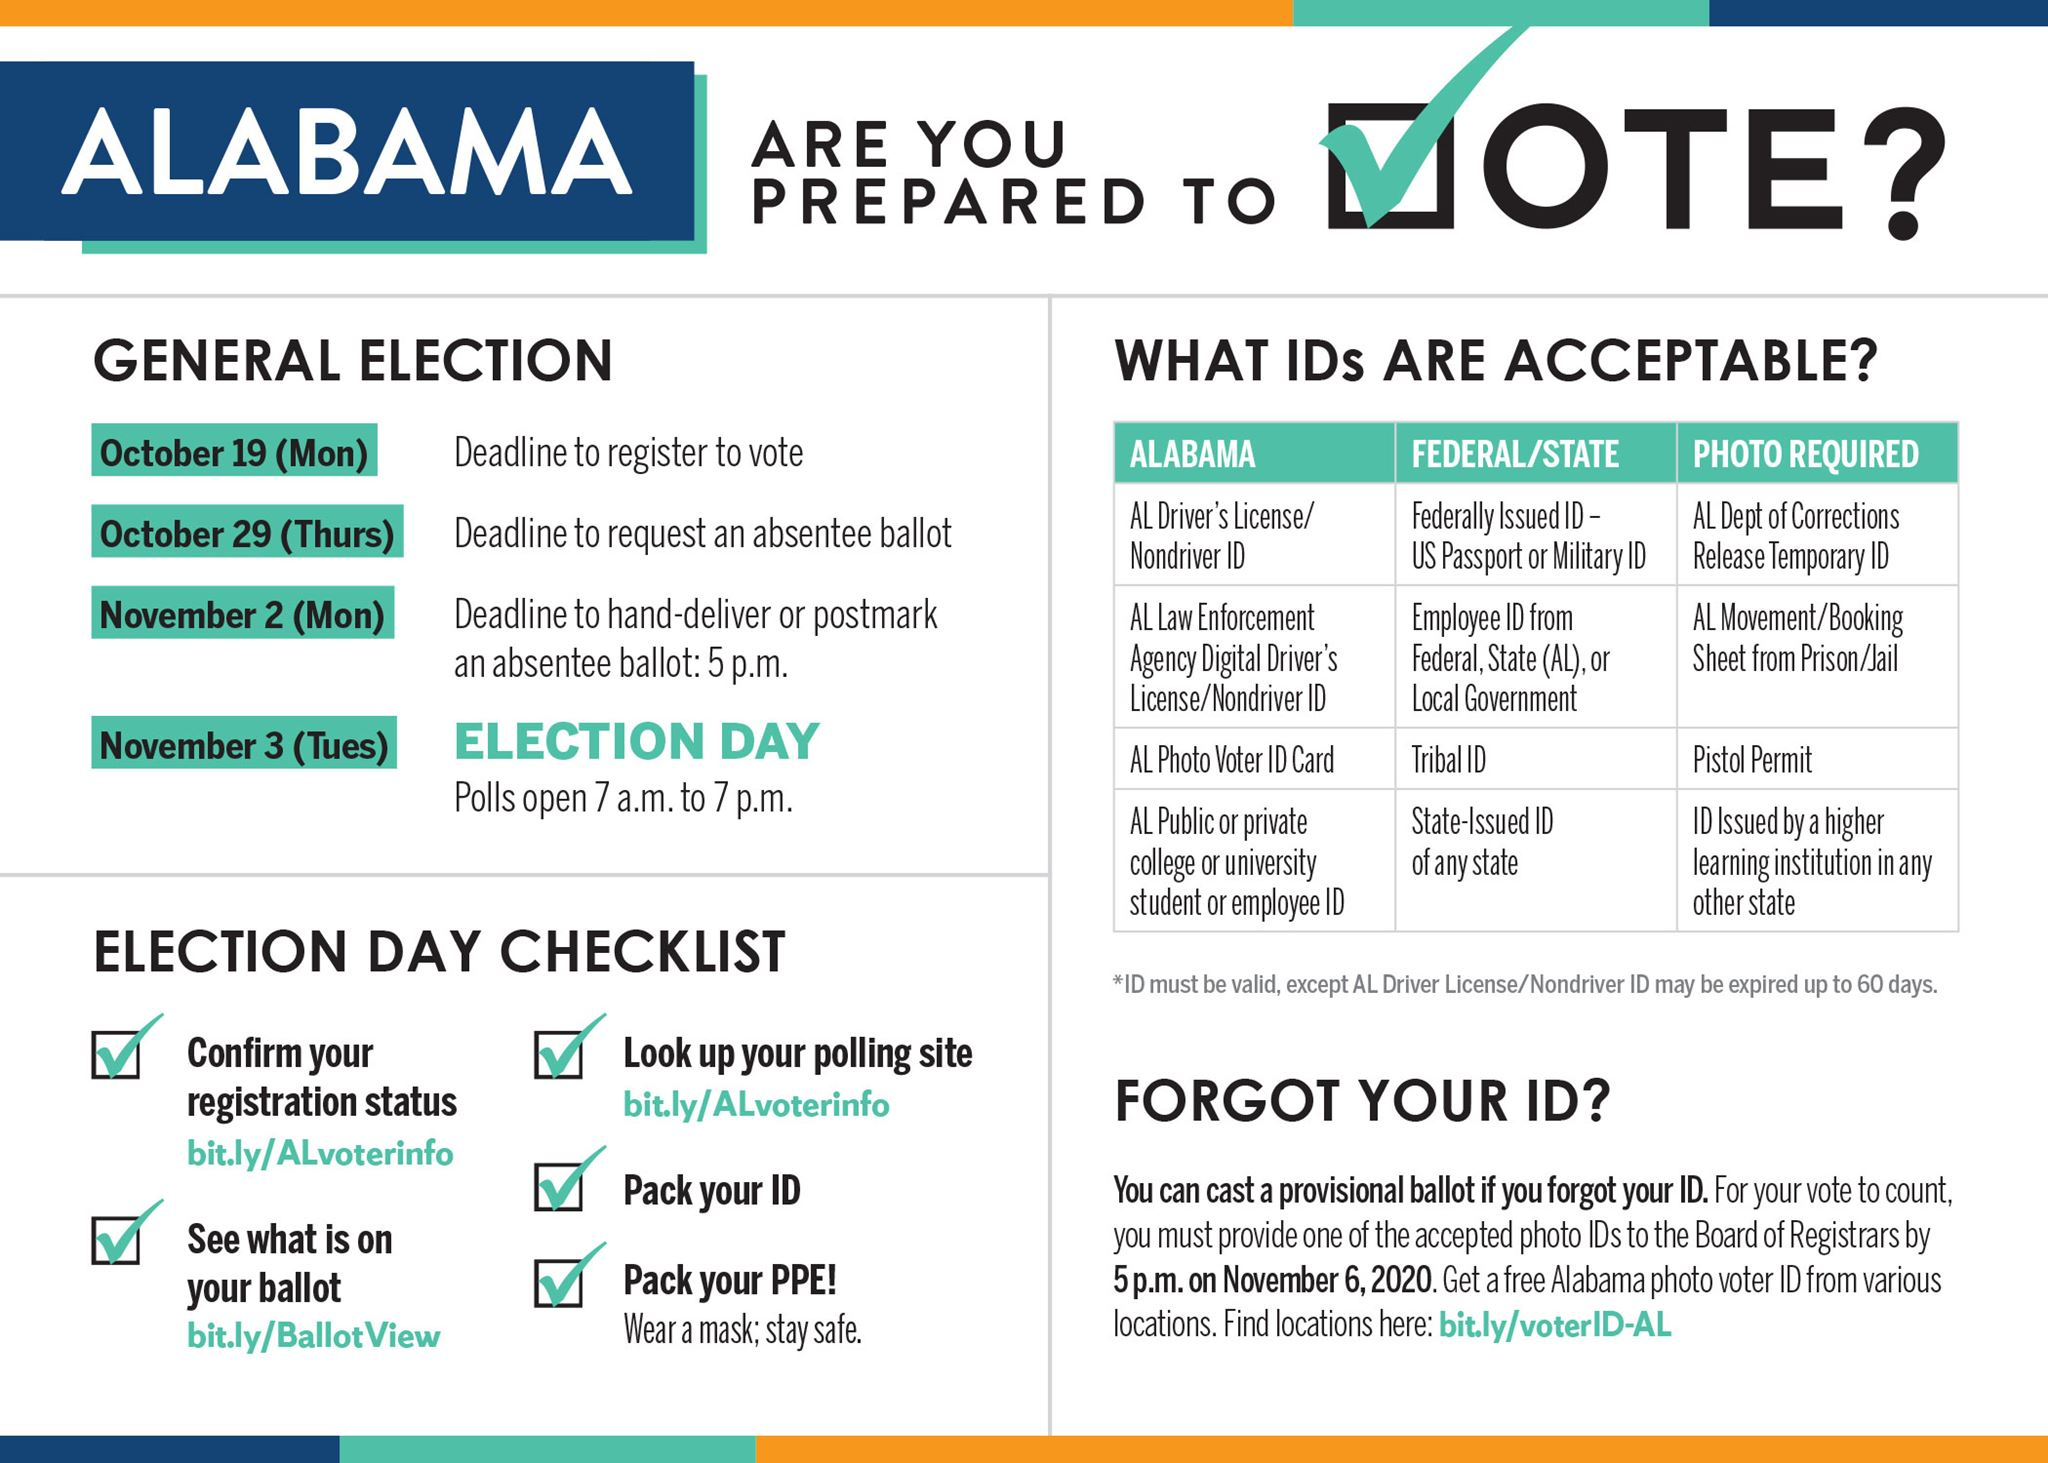 """Alabama: Are you prepared to vote?"" palm card"